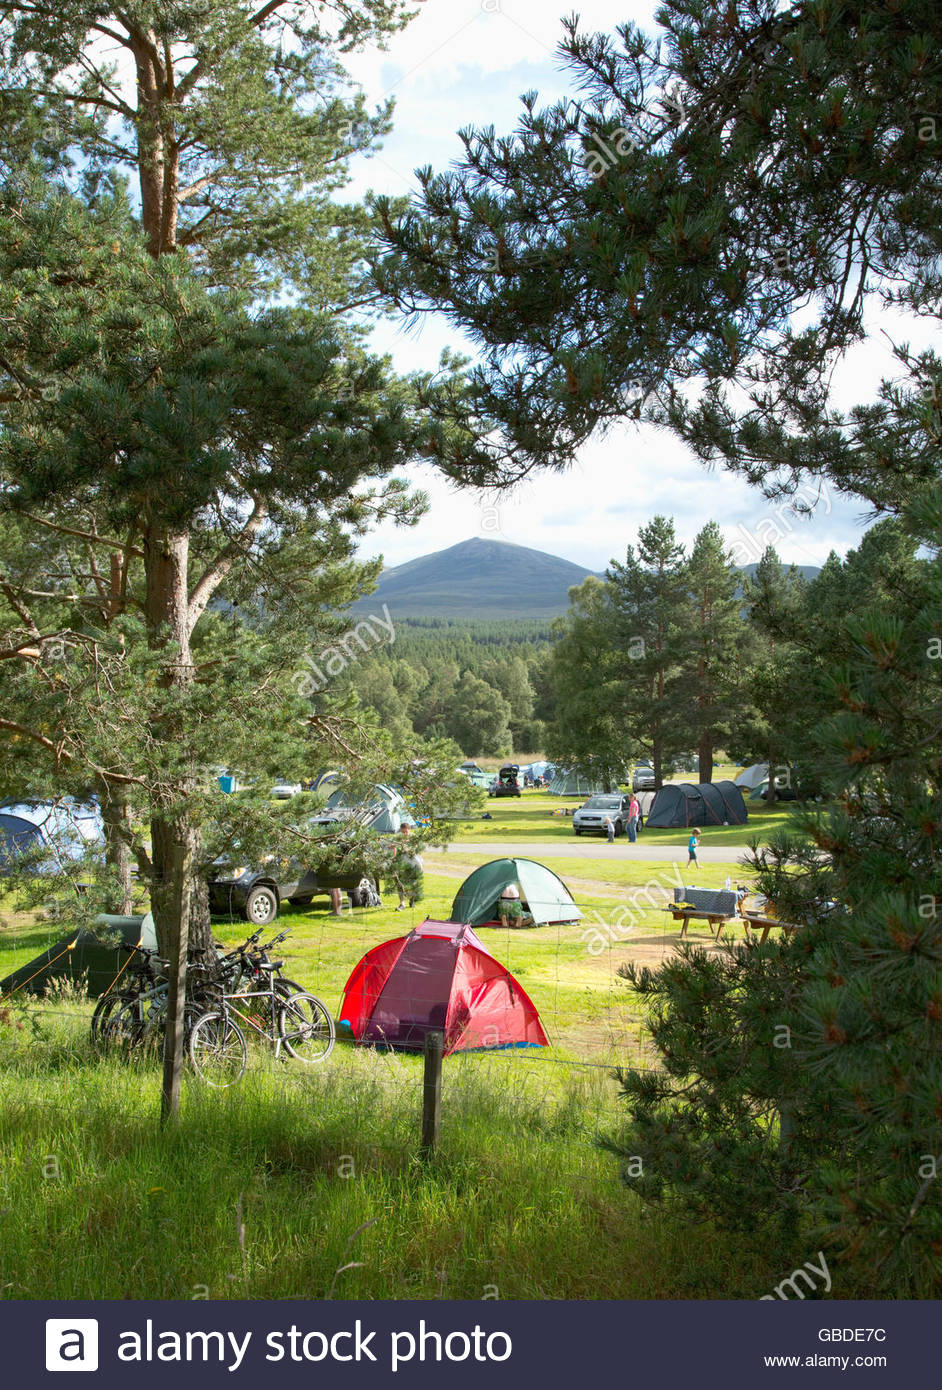 The busy campsite at Glenmore Forest Park near Aviemore, Highlands of Scotland. - Stock Image